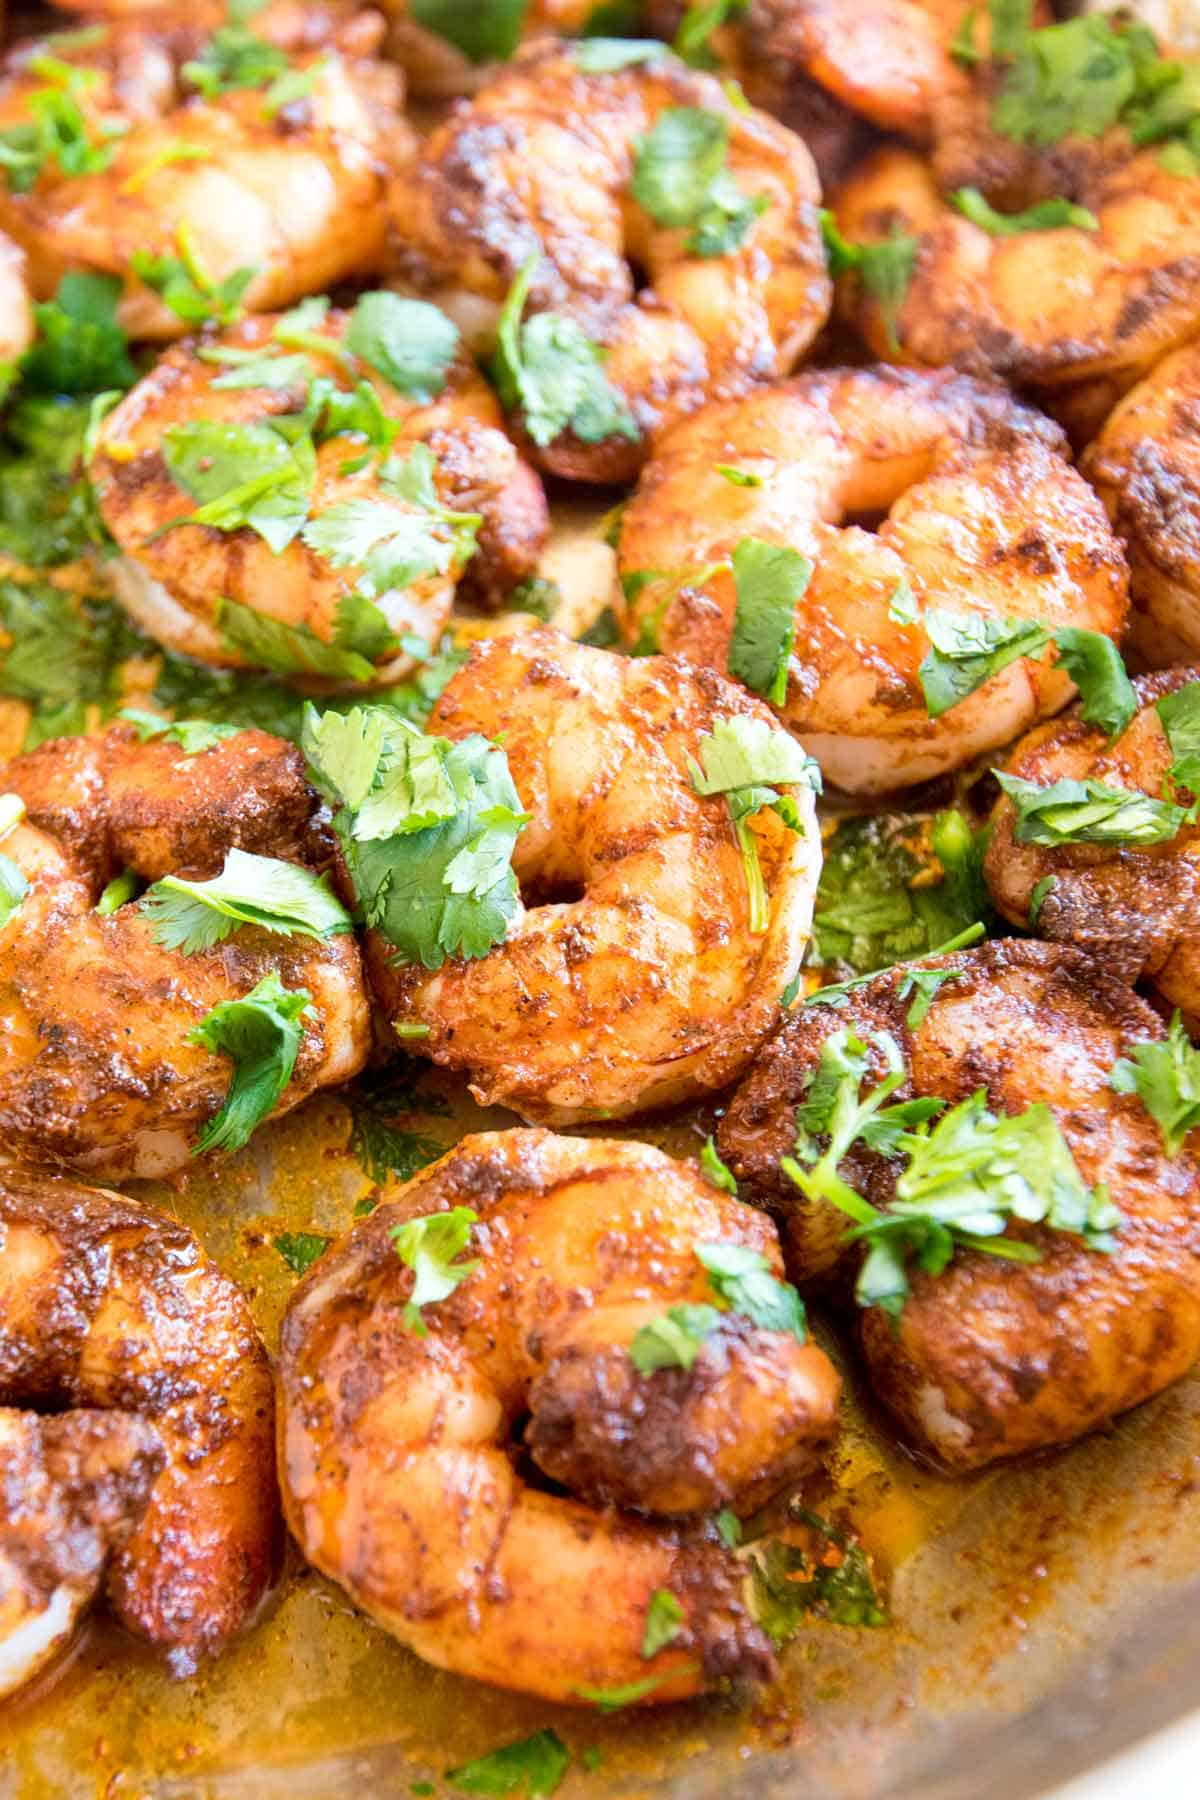 Easy chile butter shrimp tacos recipe cooking chile butter shrimp for tacos forumfinder Gallery